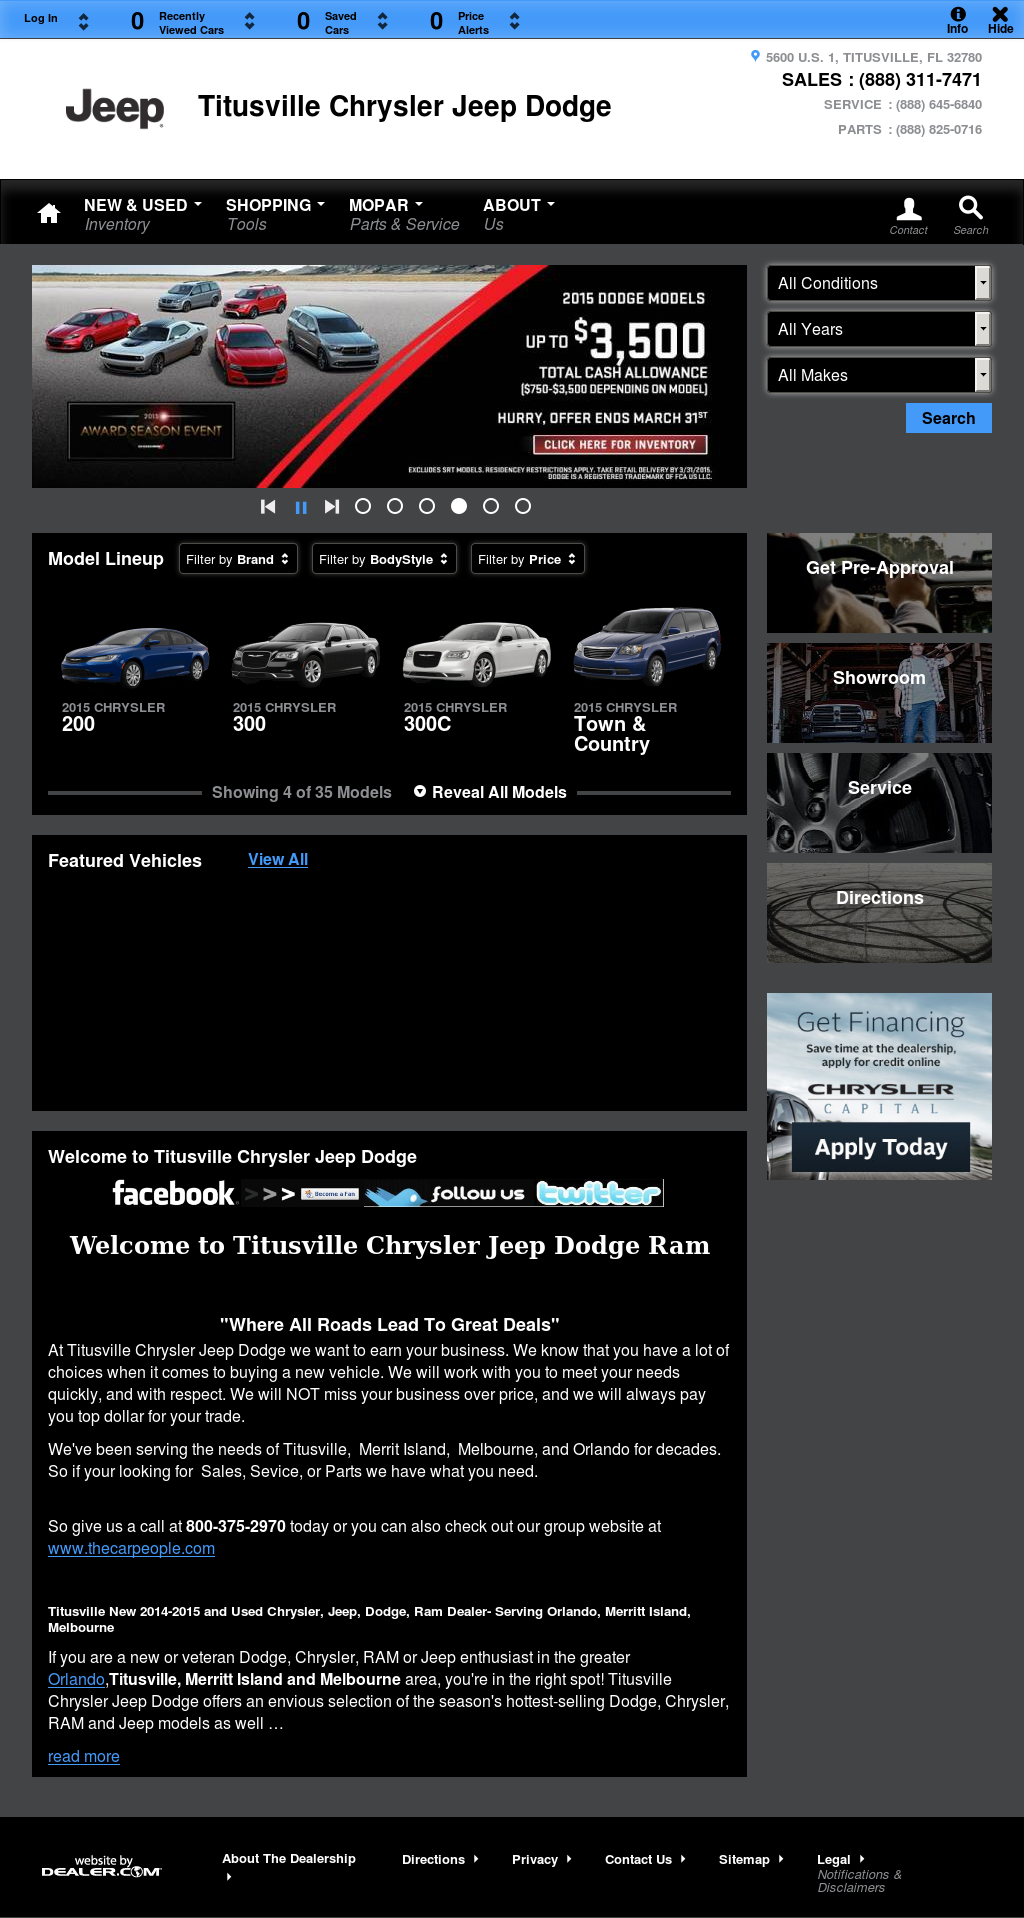 Titusville Chrysler Jeep Dodge Competitors, Revenue And Employees   Owler  Company Profile